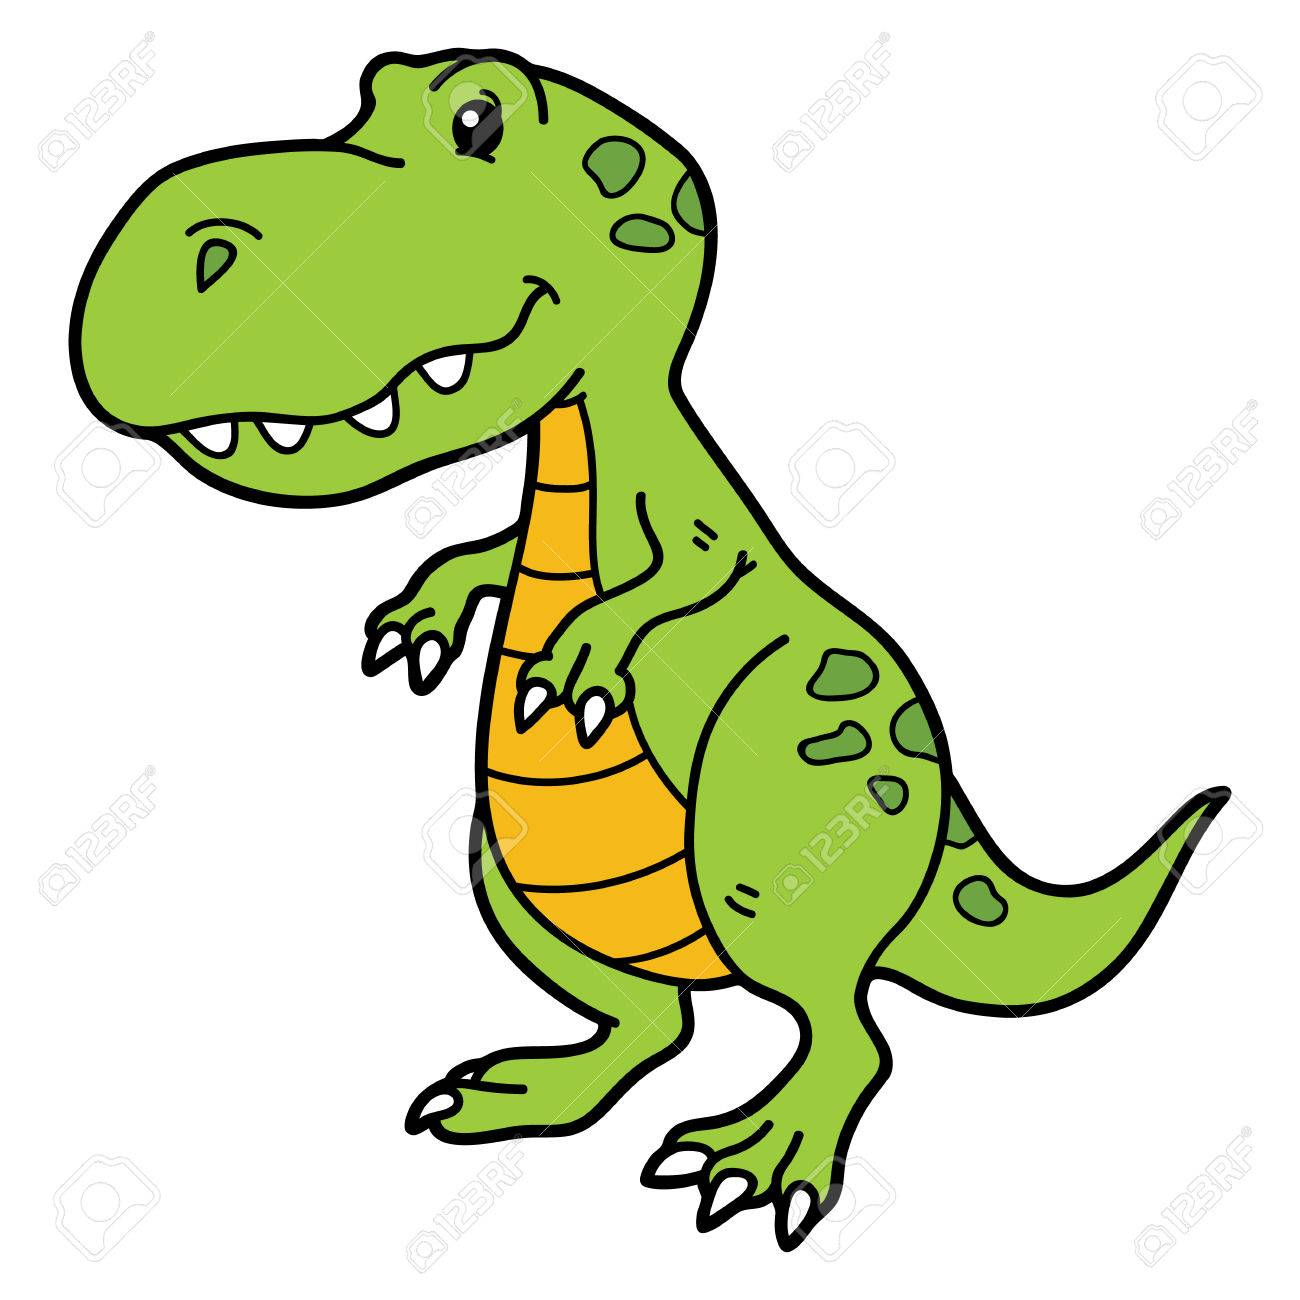 Image of: Vector Illustration Vector Vector Illustration Of Cute Cartoon Dino Character For Children And Scrap Book 123rfcom Vector Illustration Of Cute Cartoon Dino Character For Children